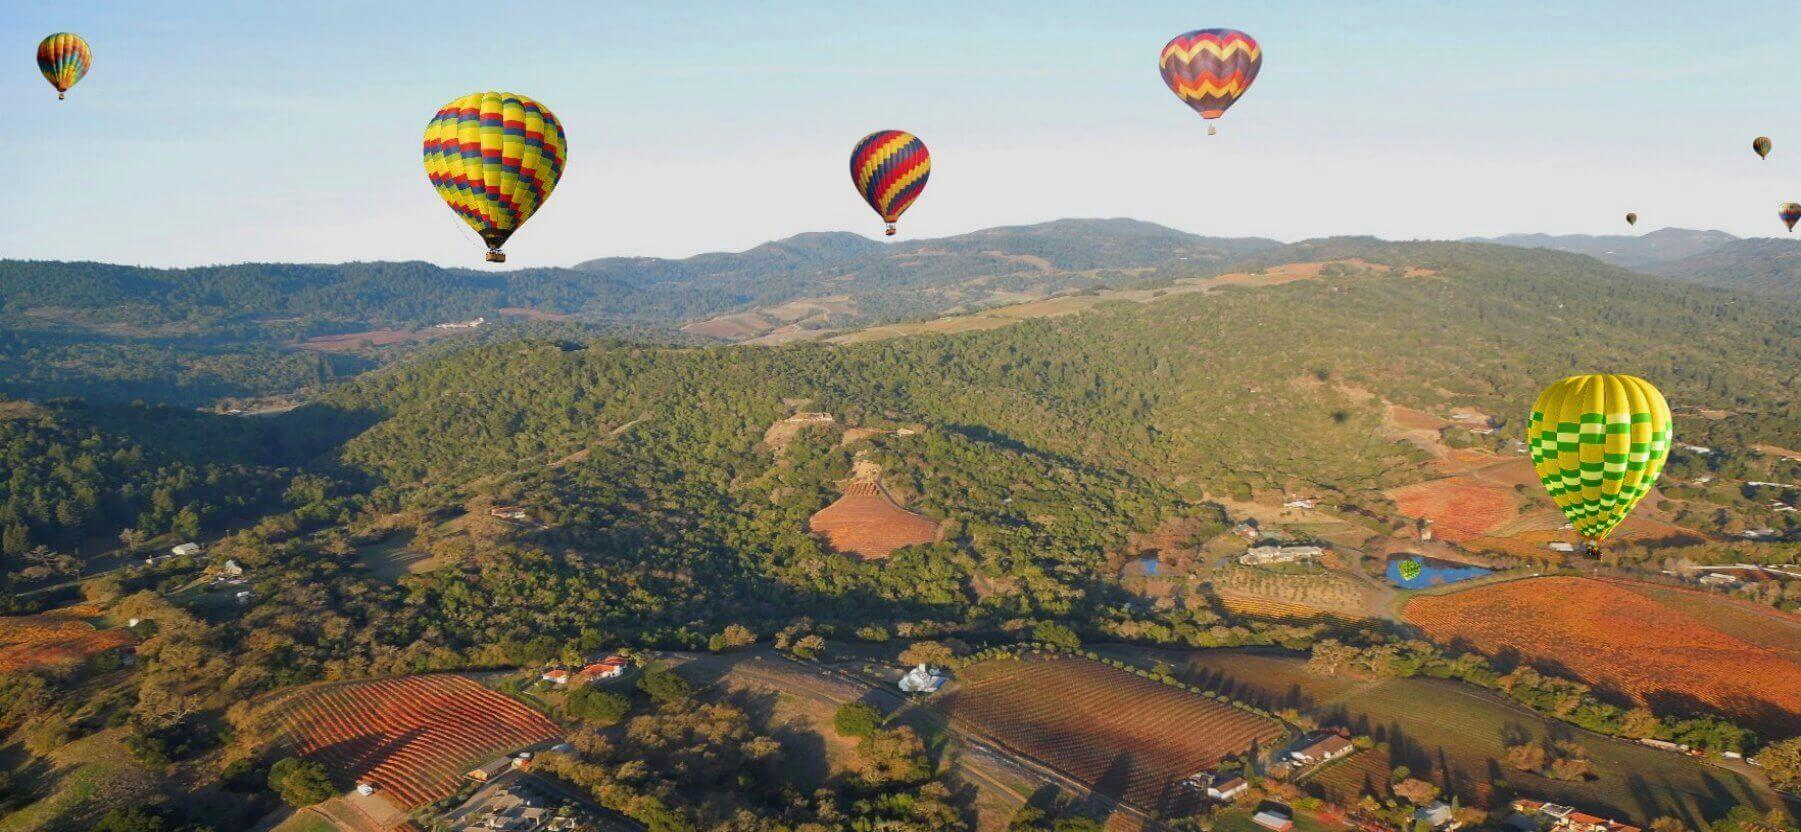 Thrilling-Hot-Air-Balloon-Rides-Over-Napa-Valley